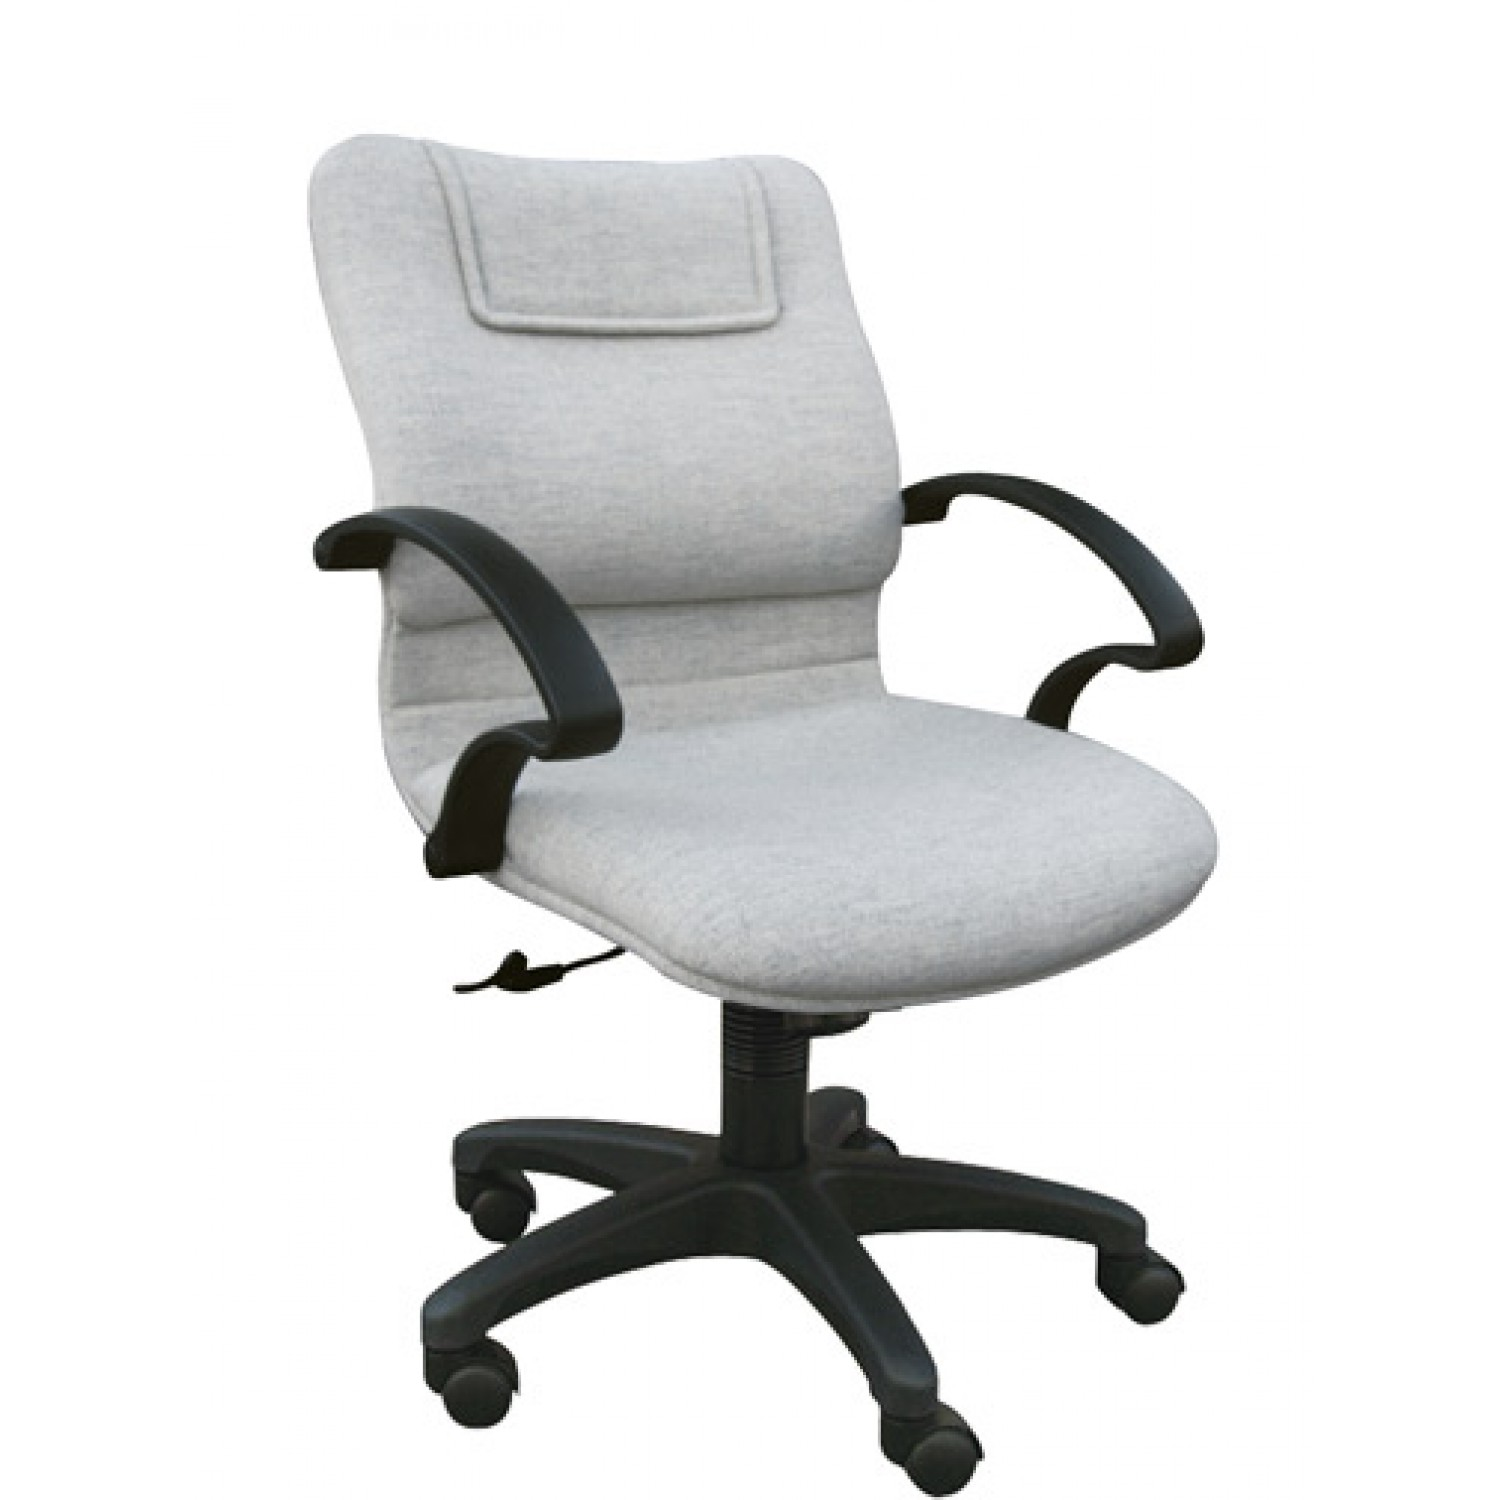 low back chair how to make a kitchen lotus executive office furniture since 1990